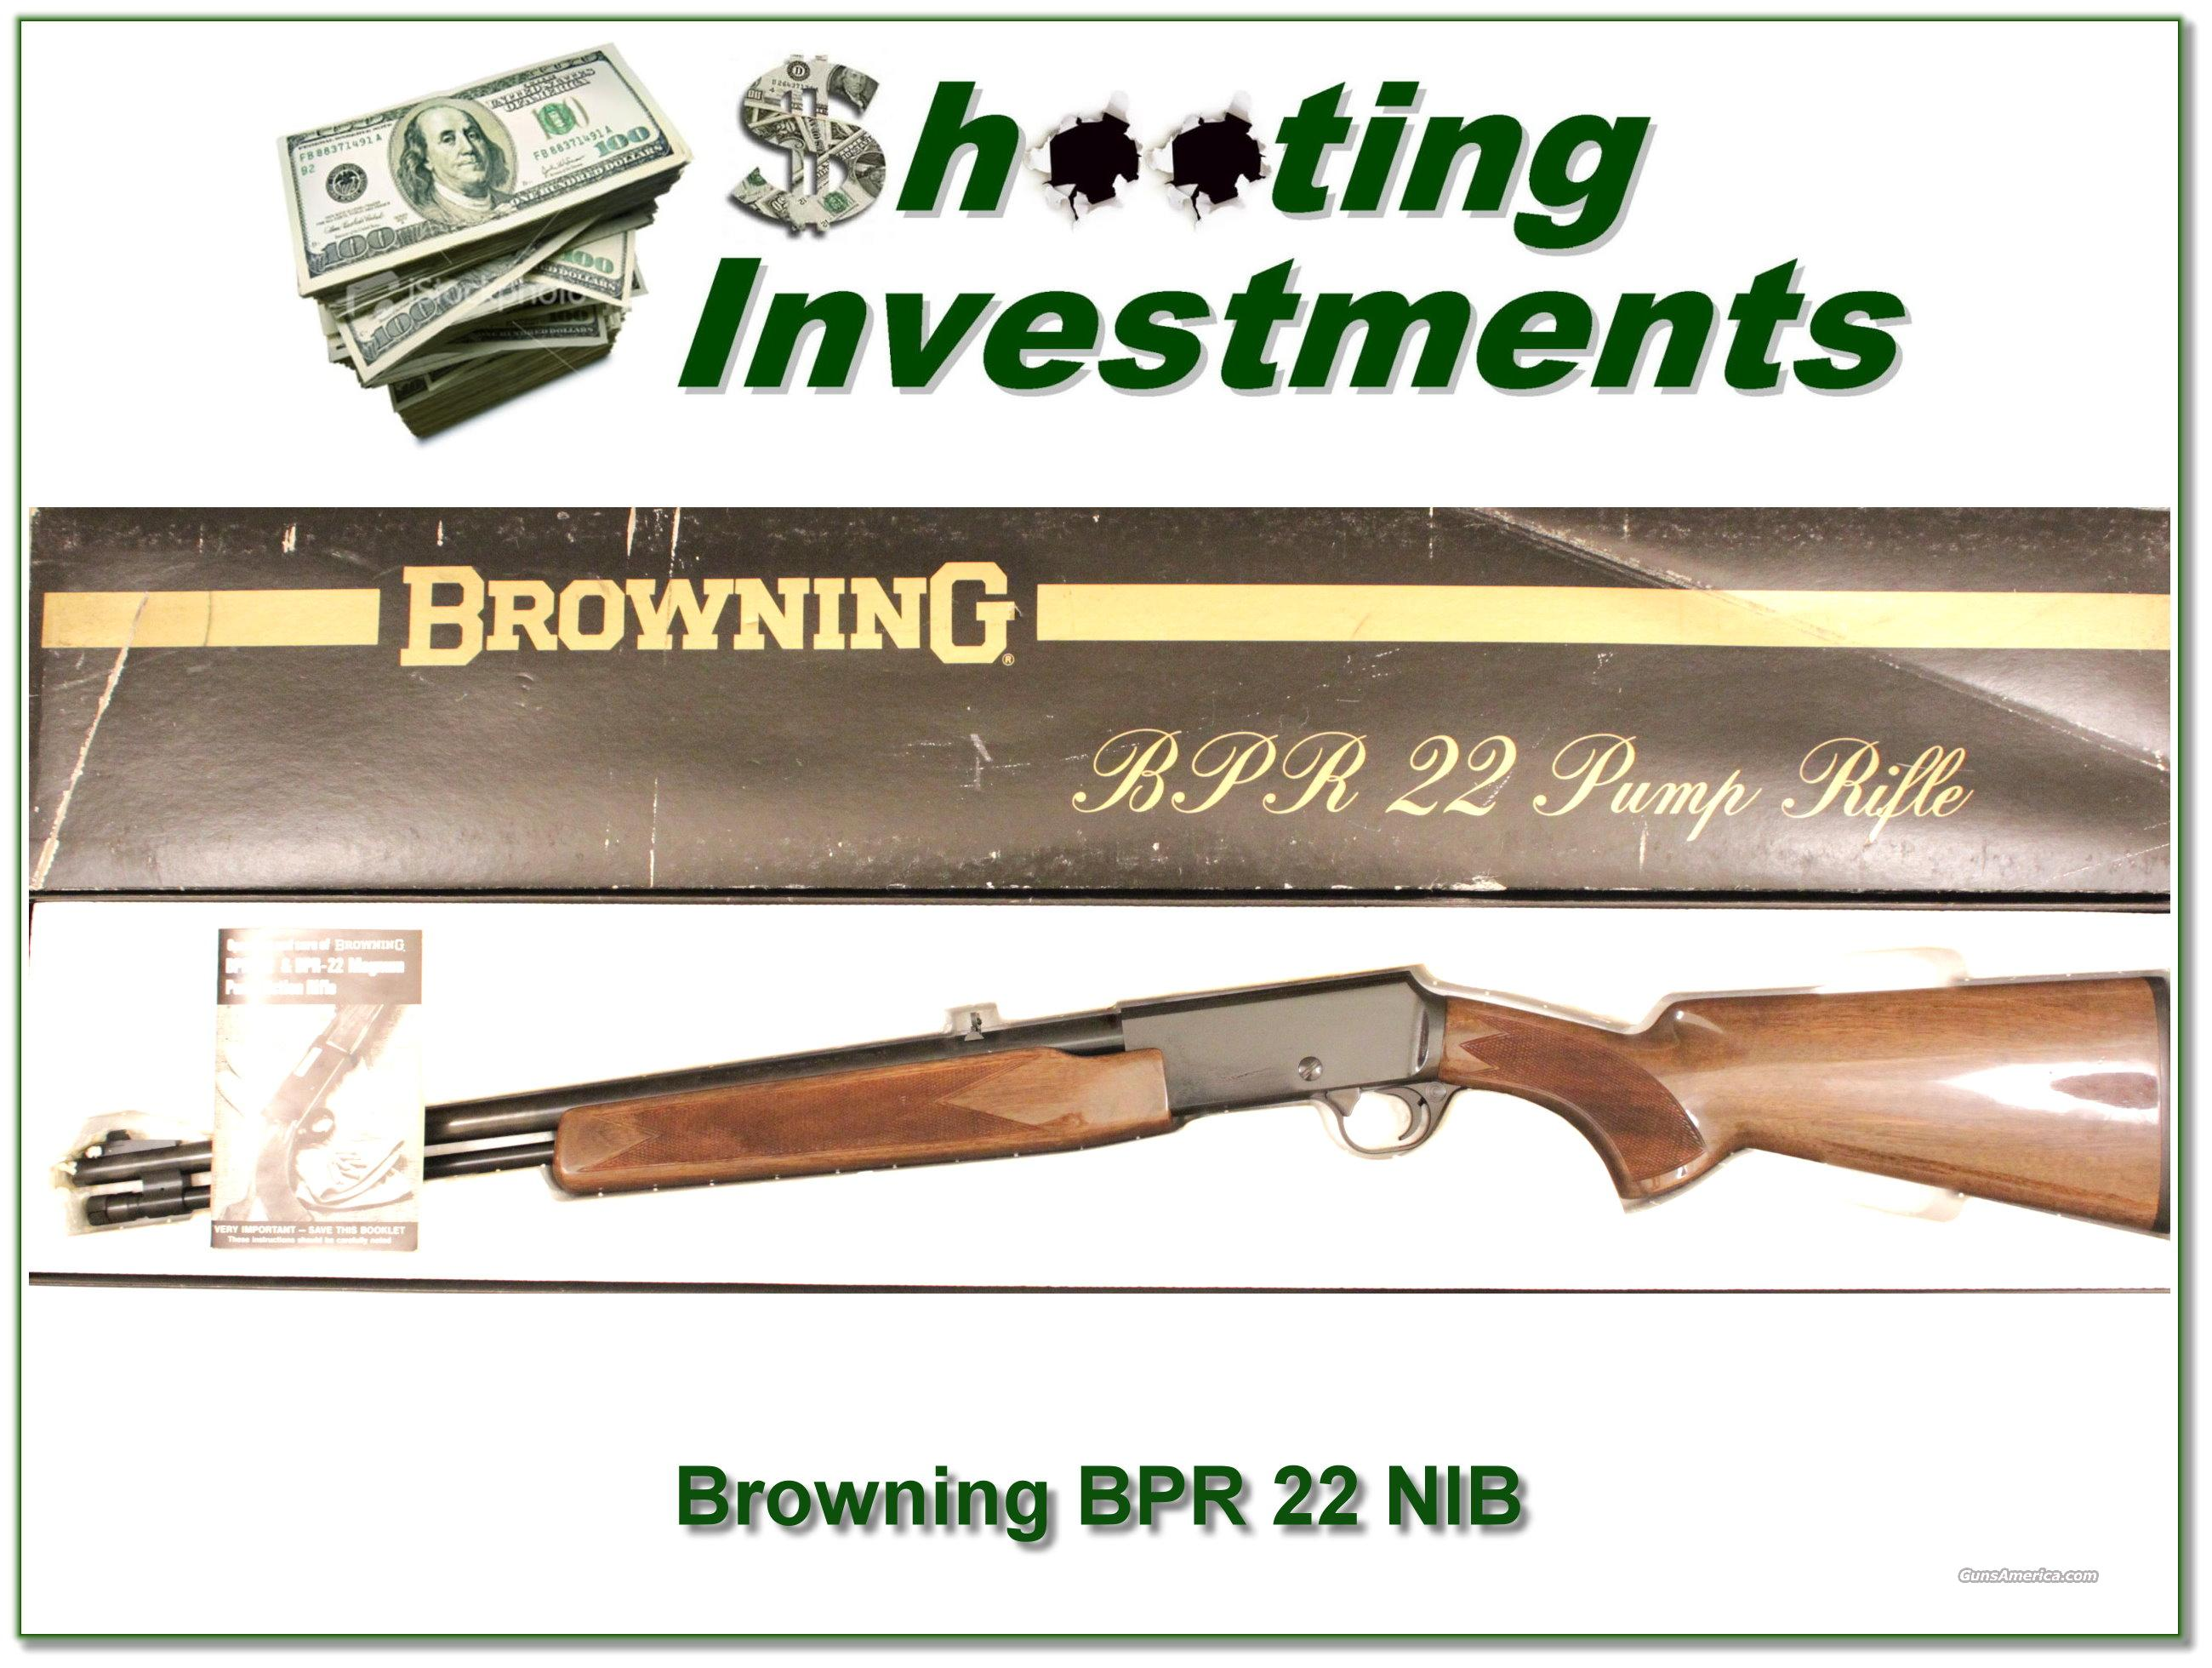 Browning BPR 22 NIB  Guns > Rifles > Browning Rifles > Pump Action